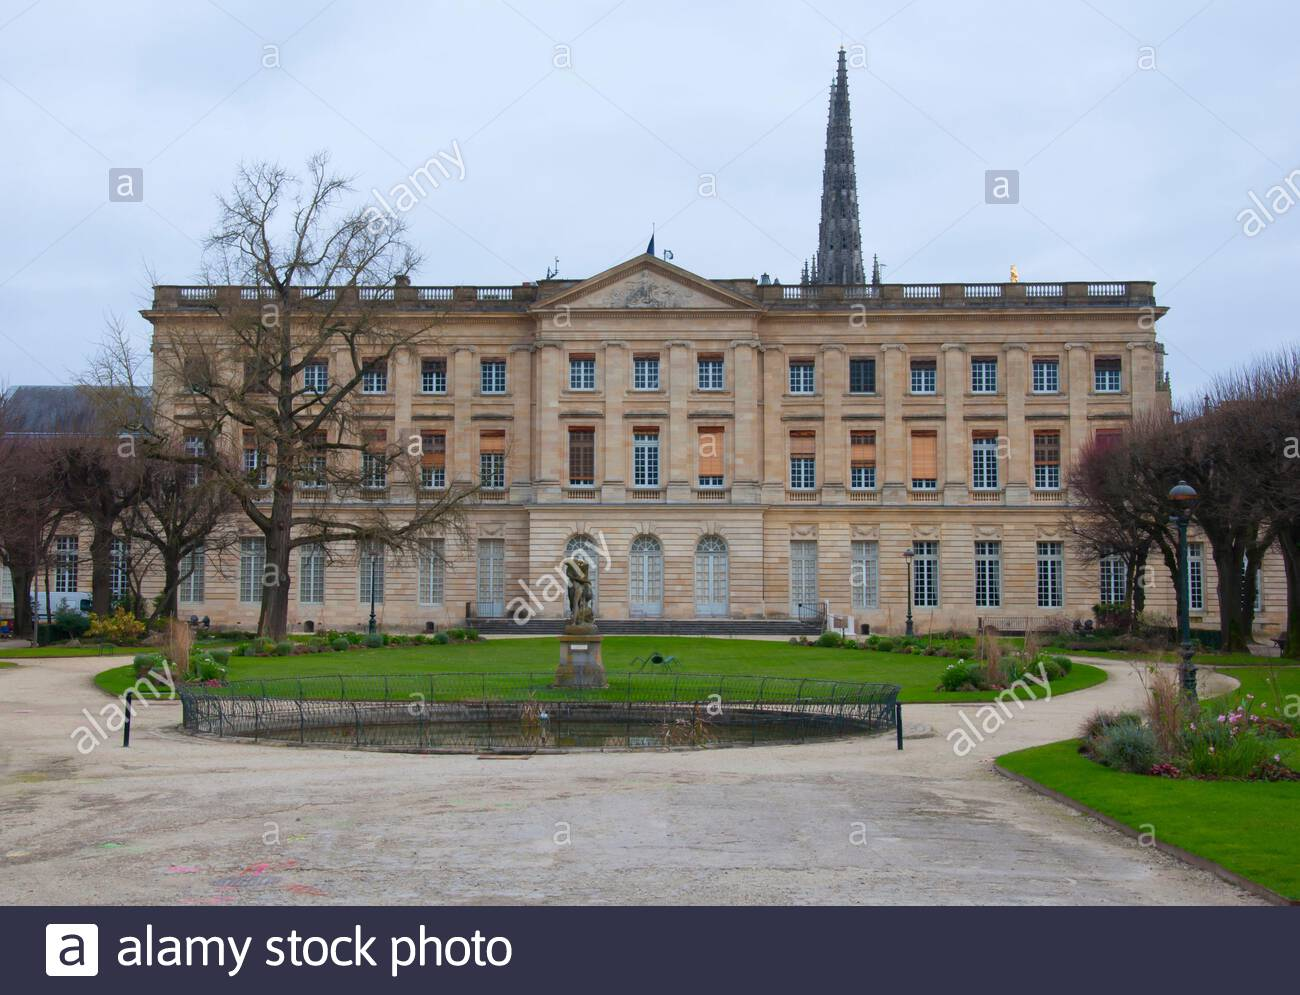 facade of big palace in jardin mairie garden of town hall winter day in bordeaux france 2BBHNB0